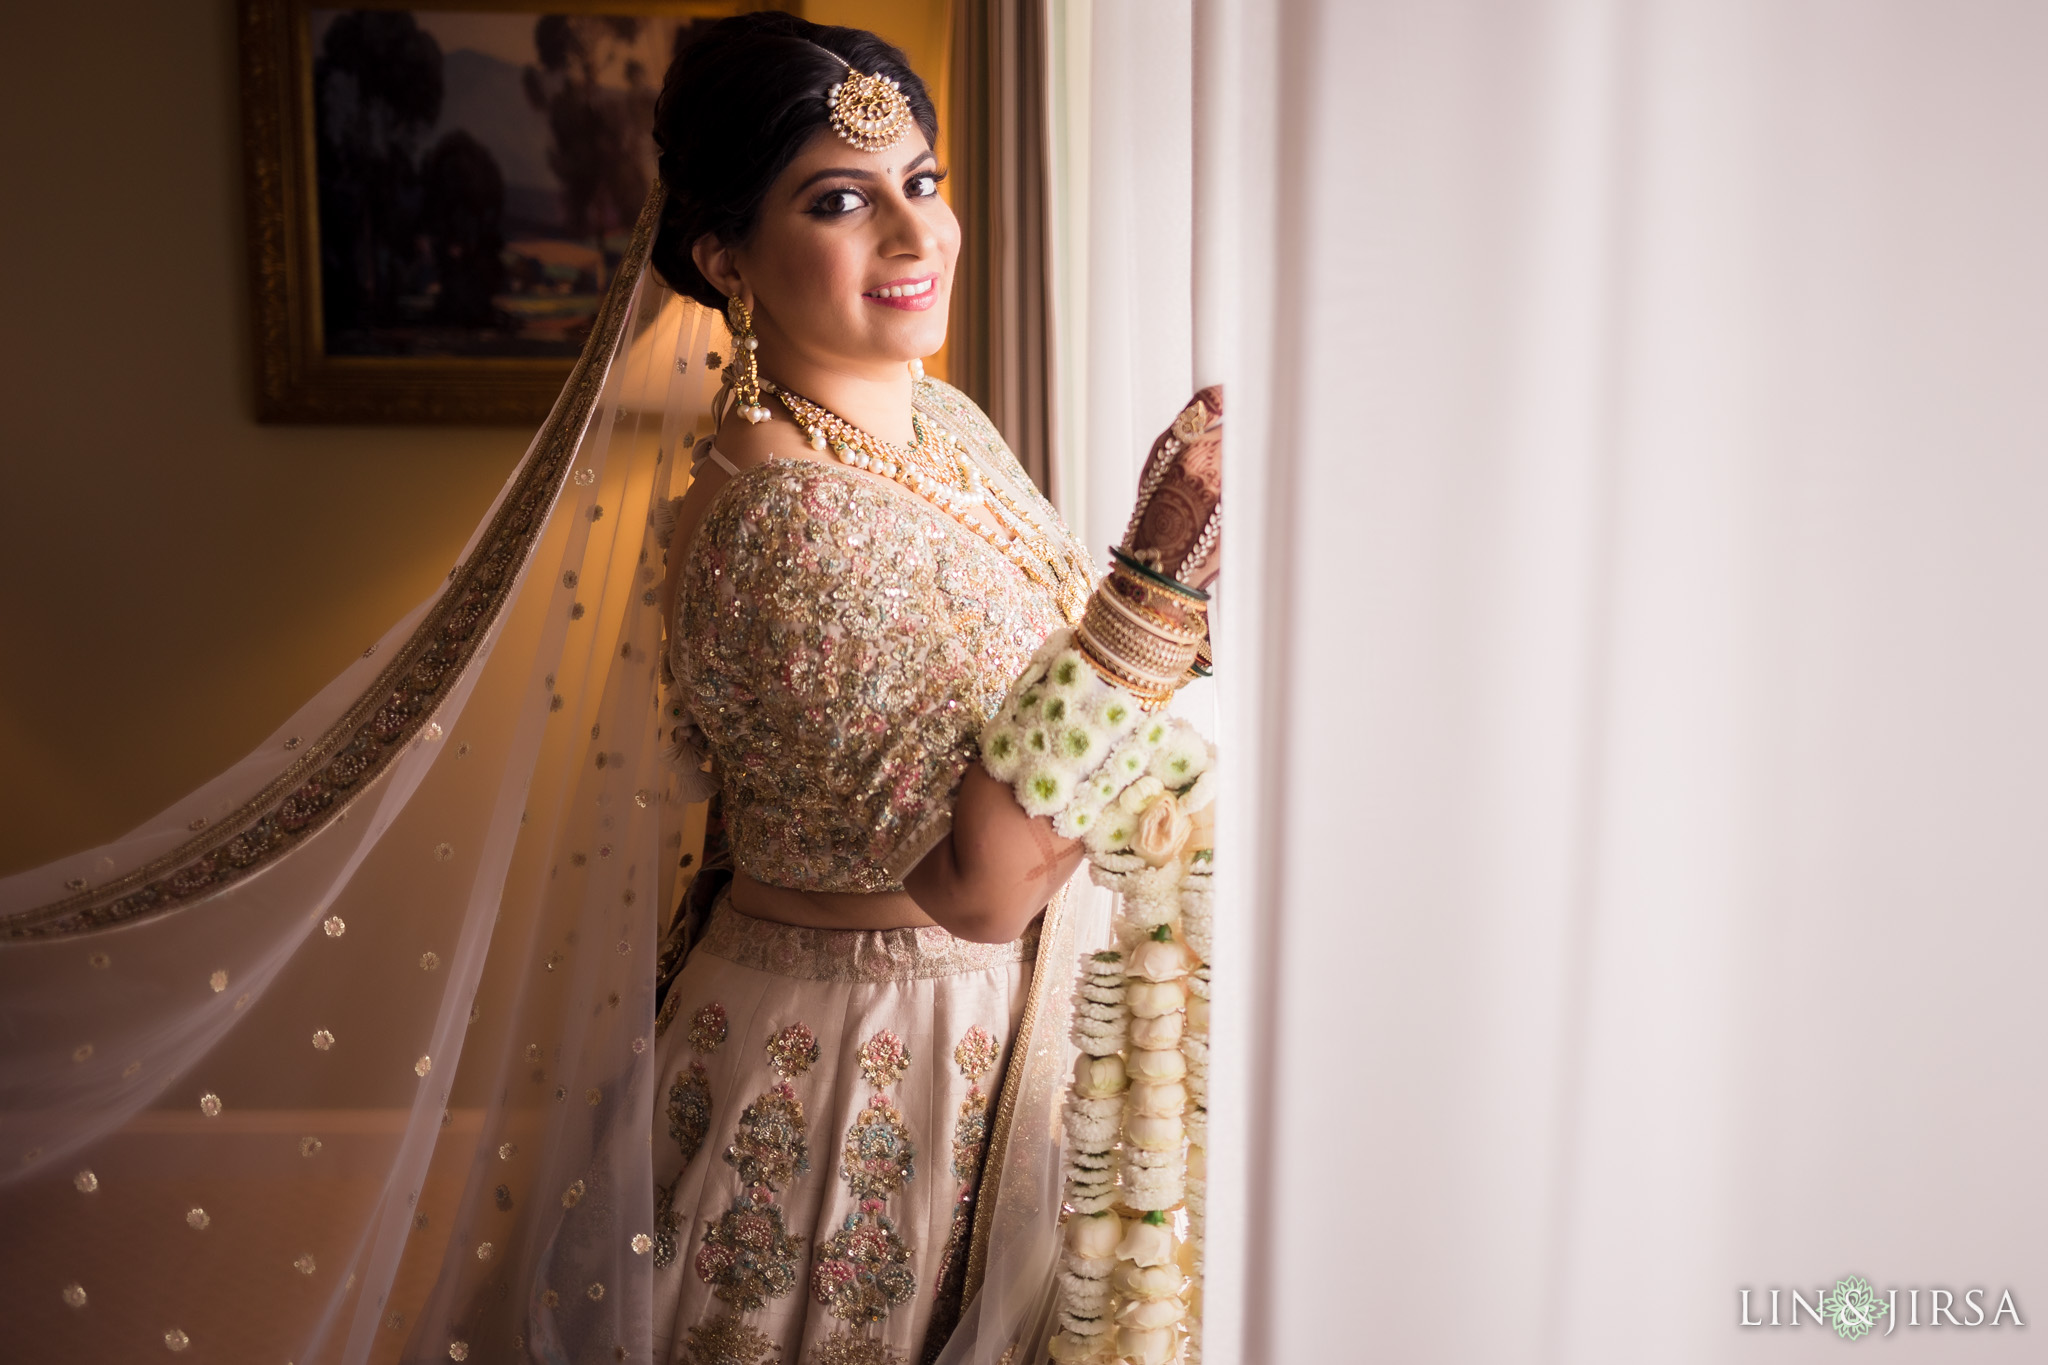 008 montage laguna beach indian bride wedding photography